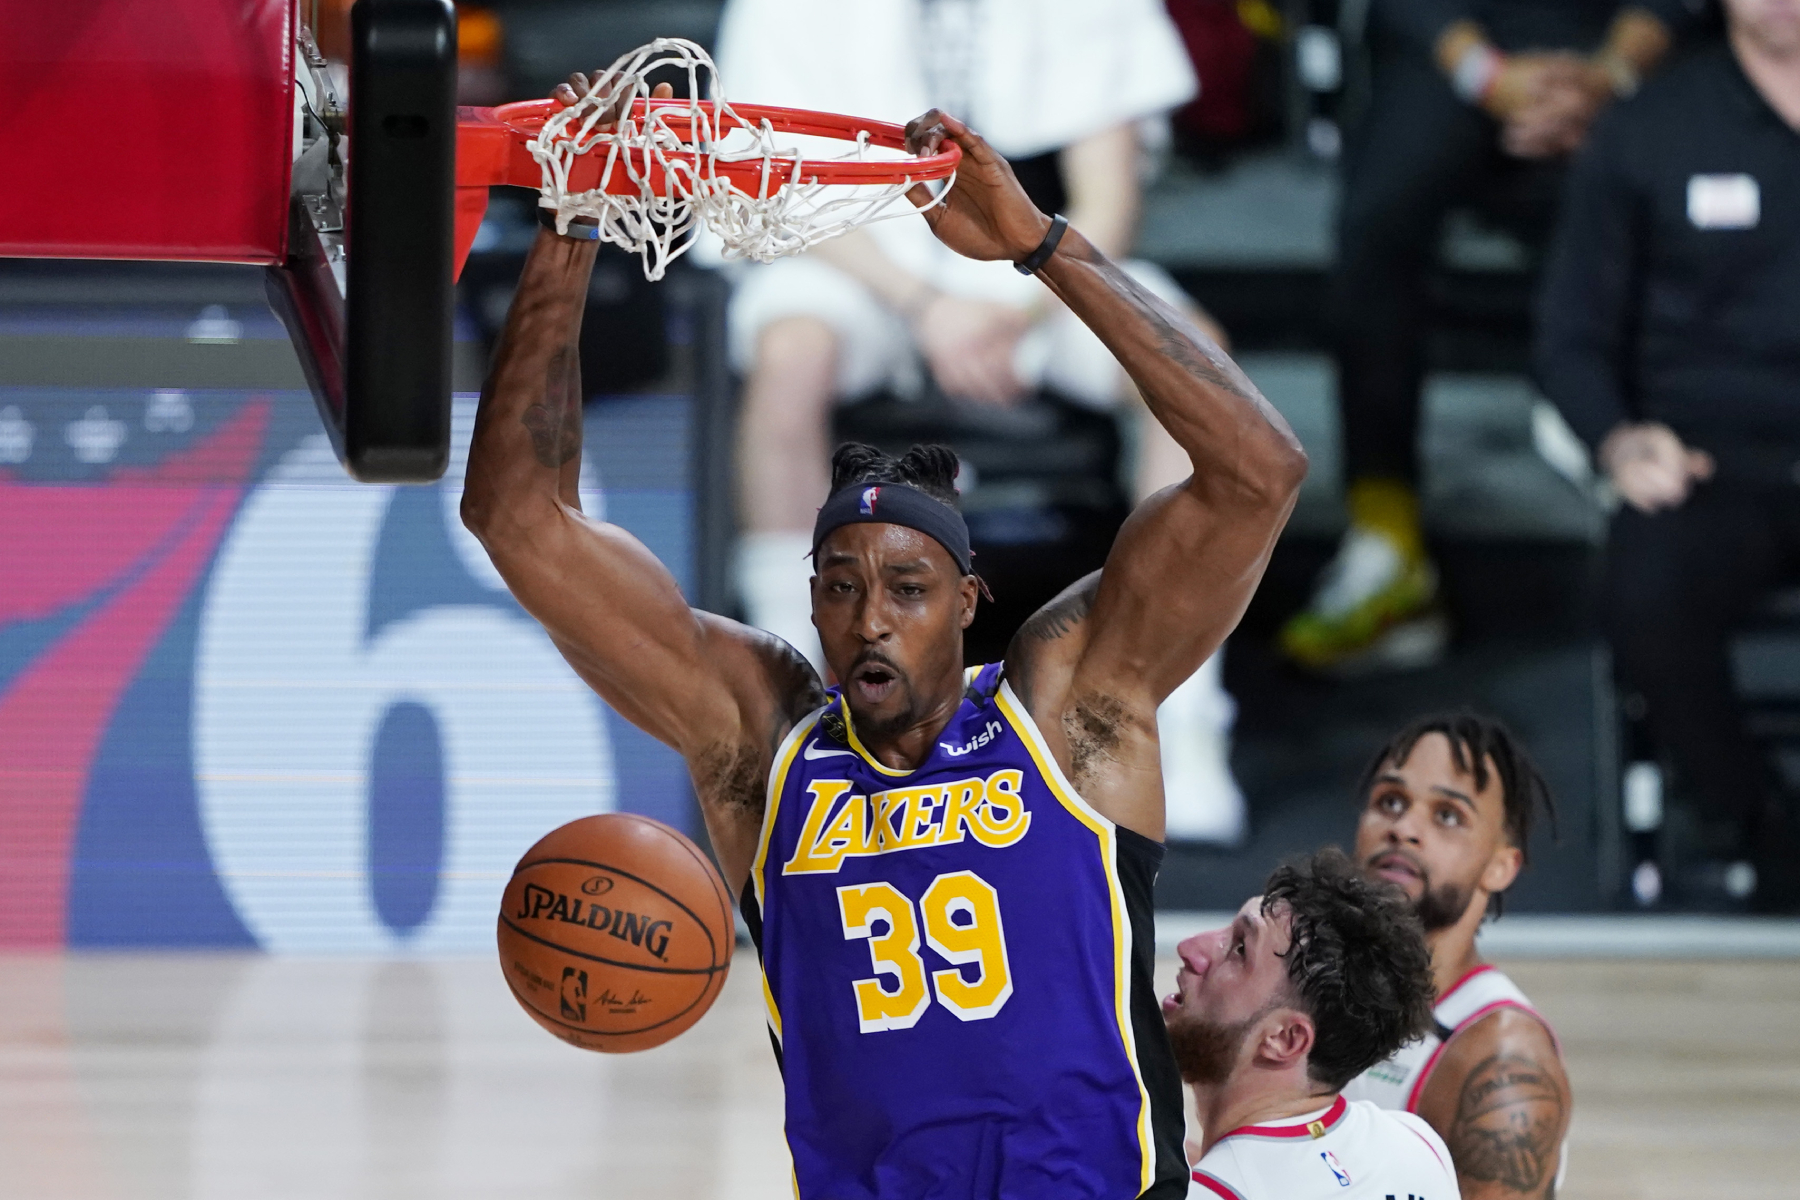 Dwight Howard Continues To Prove That He Has Set His Ego Aside To Win a Championship With the Lakers